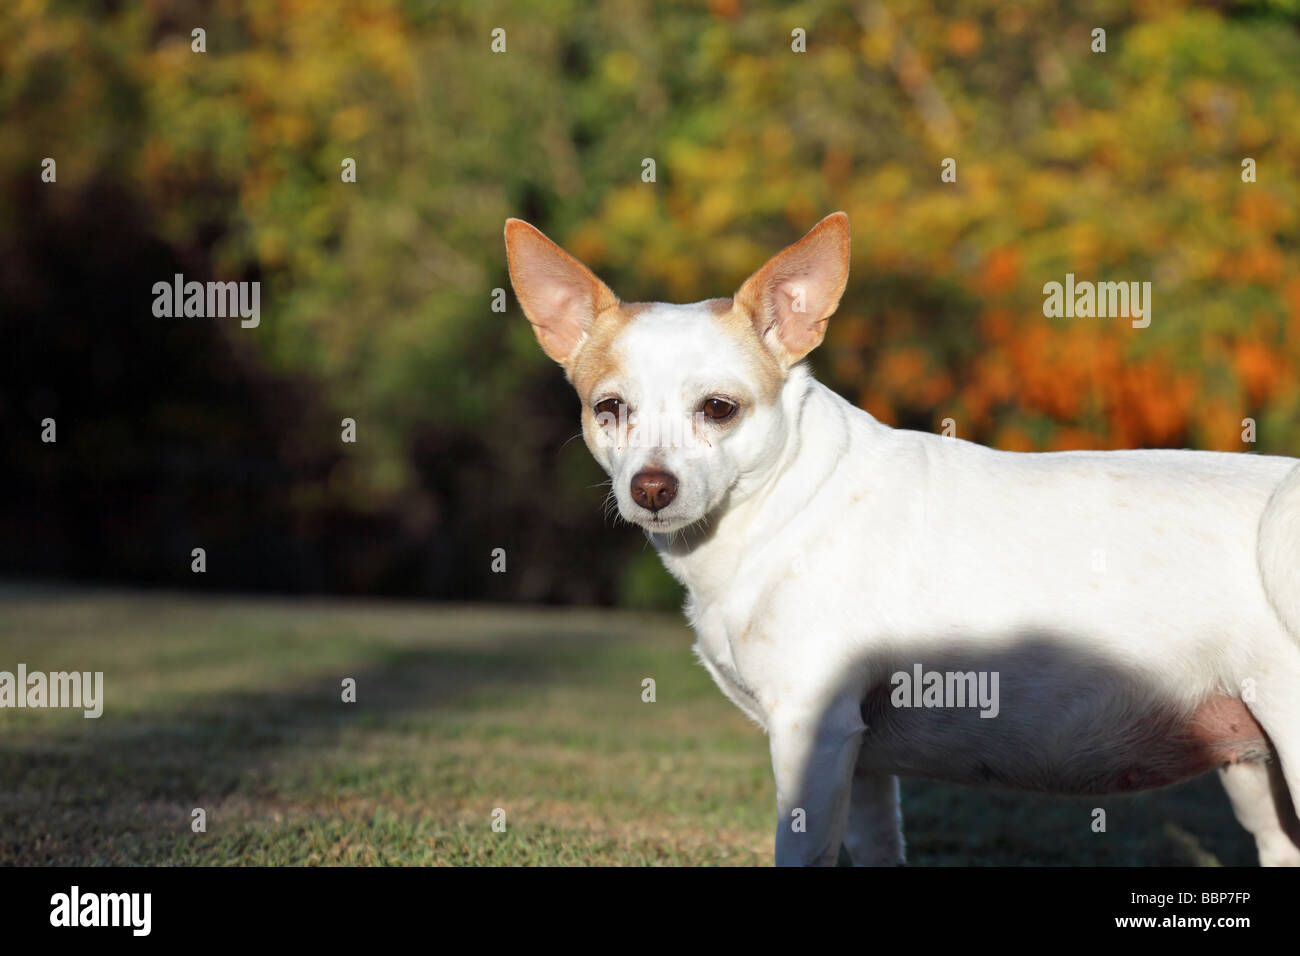 Jack Russell Terrier crossed with Chihuahua as family pet - Stock Image